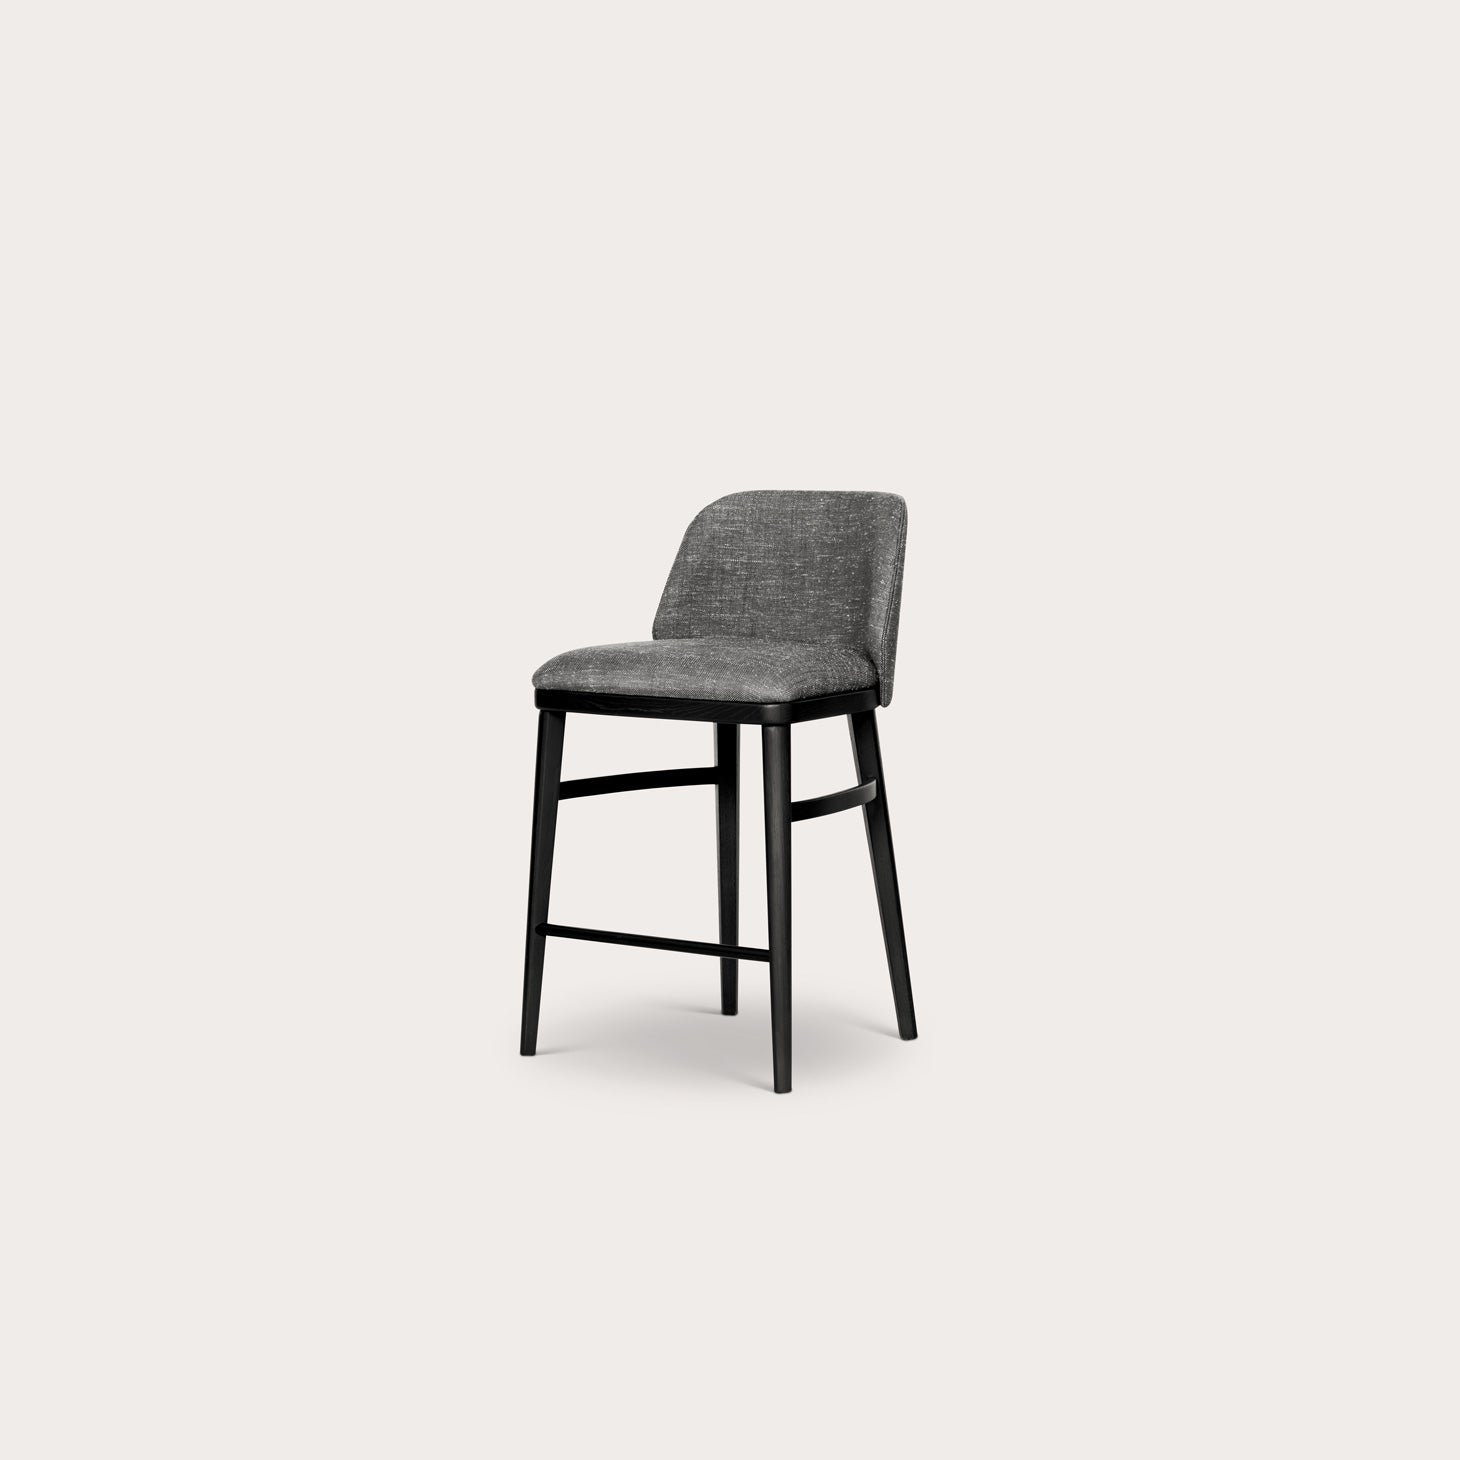 LUM Bar Stool Seating Christophe Delcourt Designer Furniture Sku: 765-120-10022